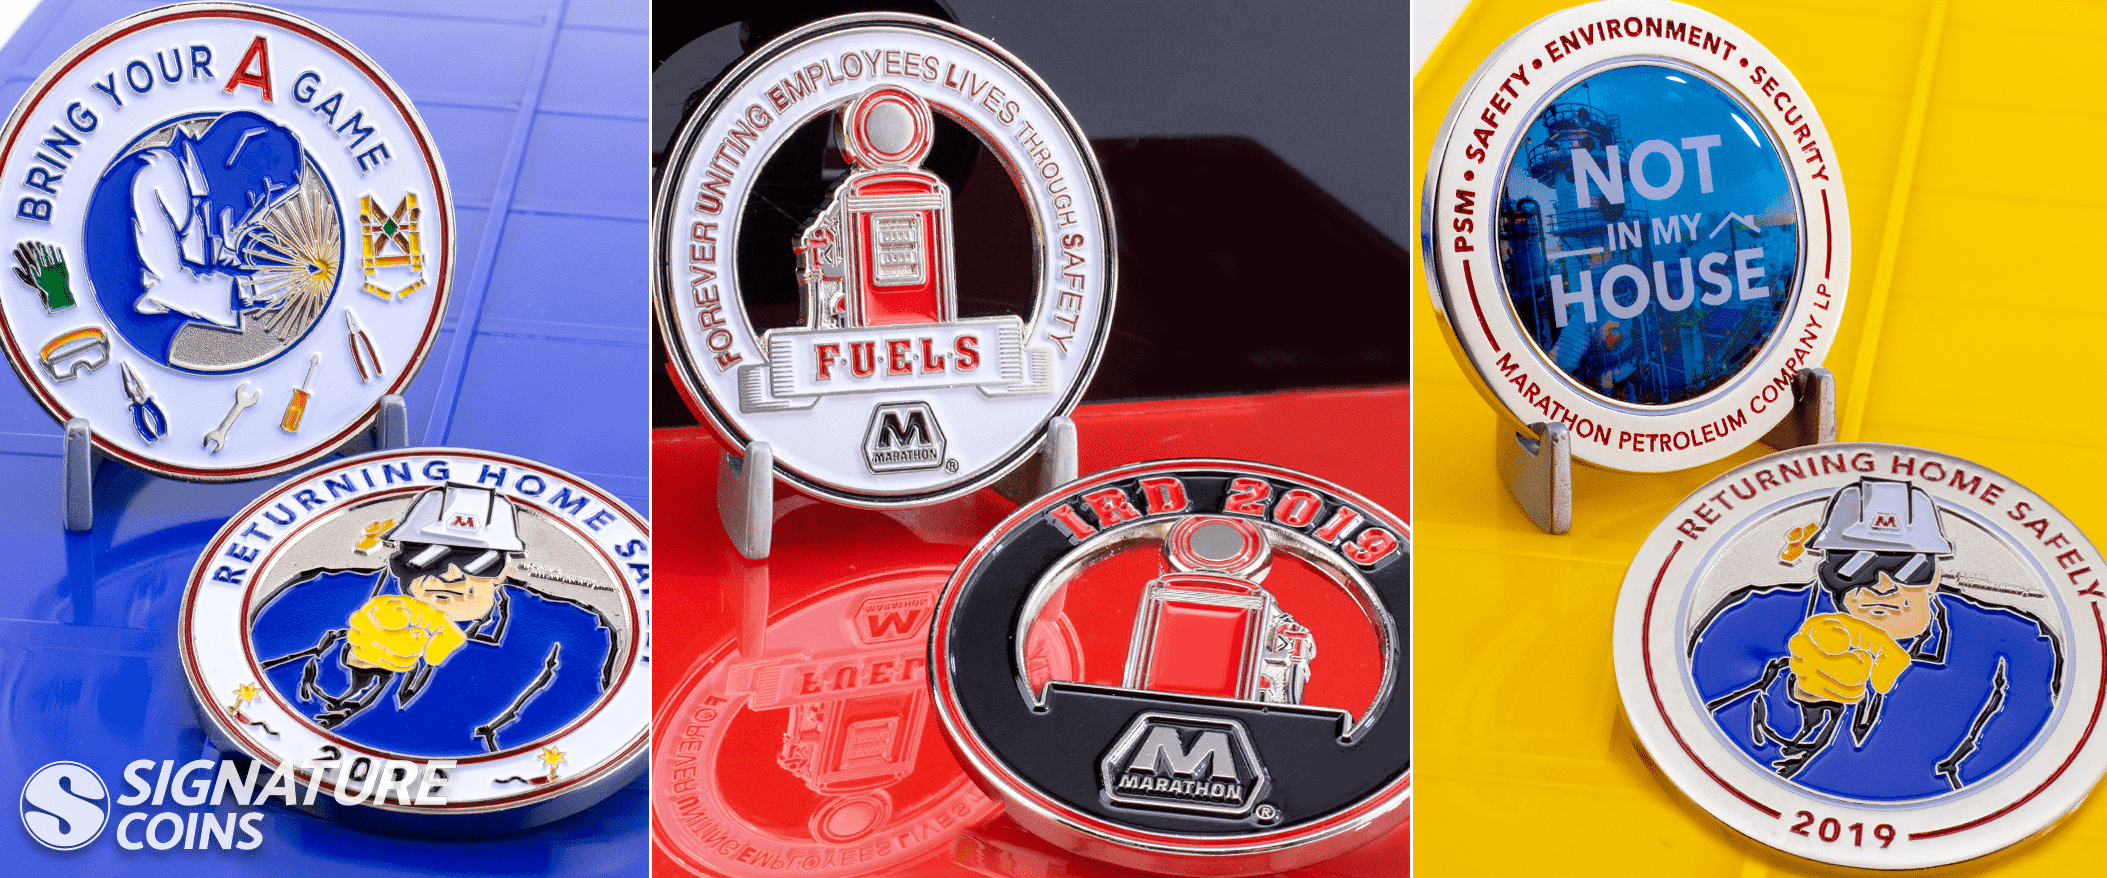 safety incentive coins